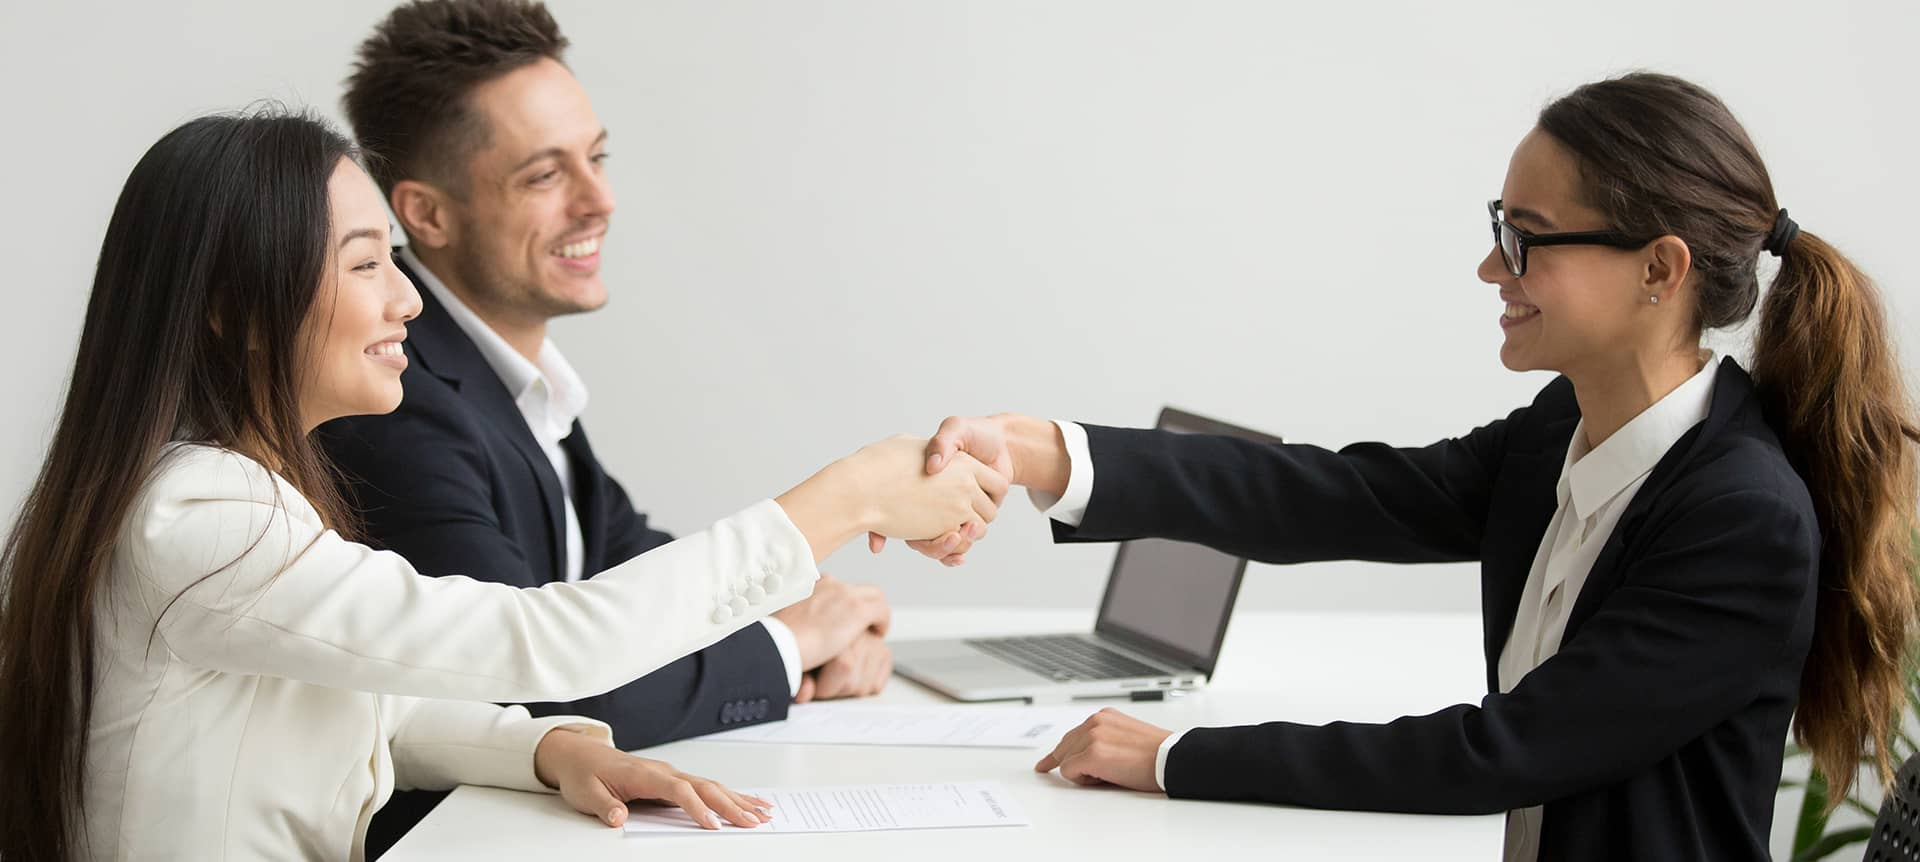 HR recruiters wearing professional suits